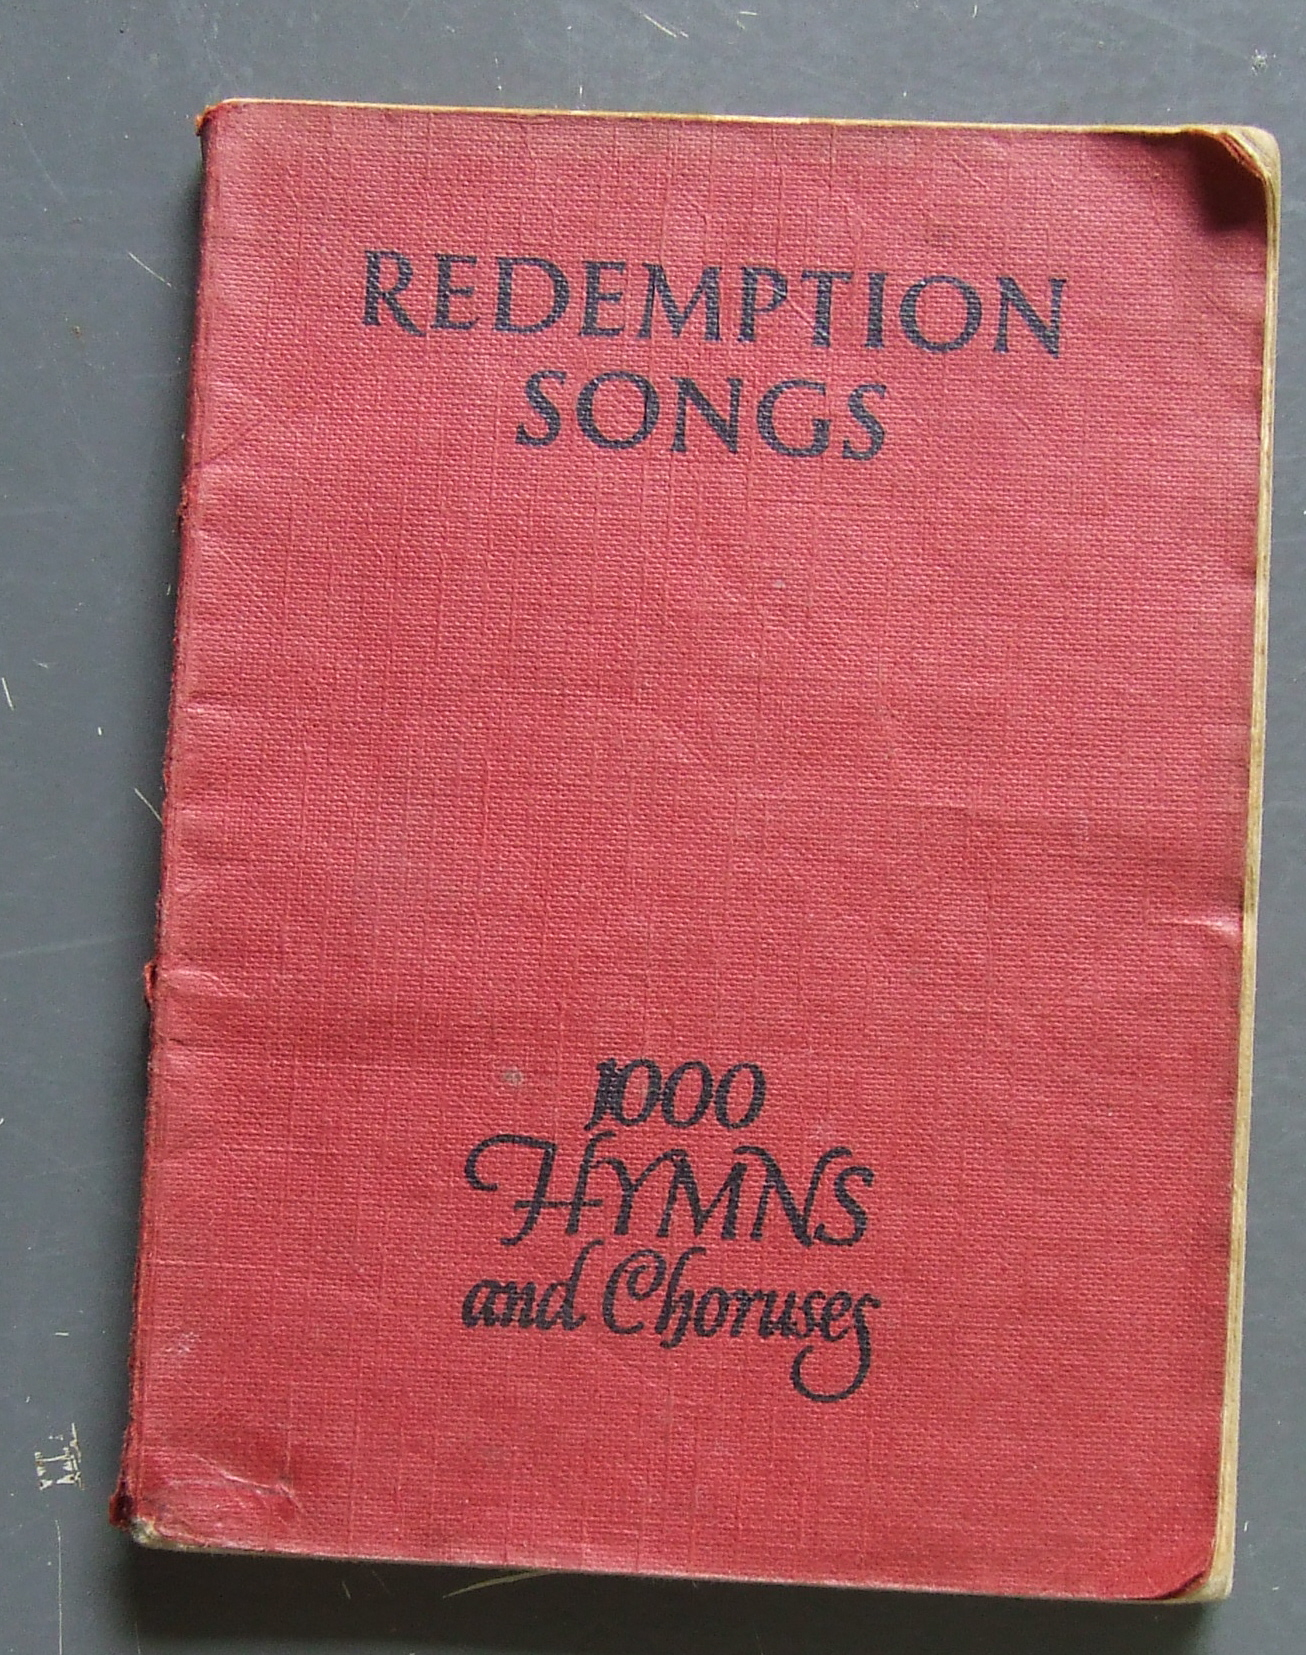 Redemption Songs Hymn Book